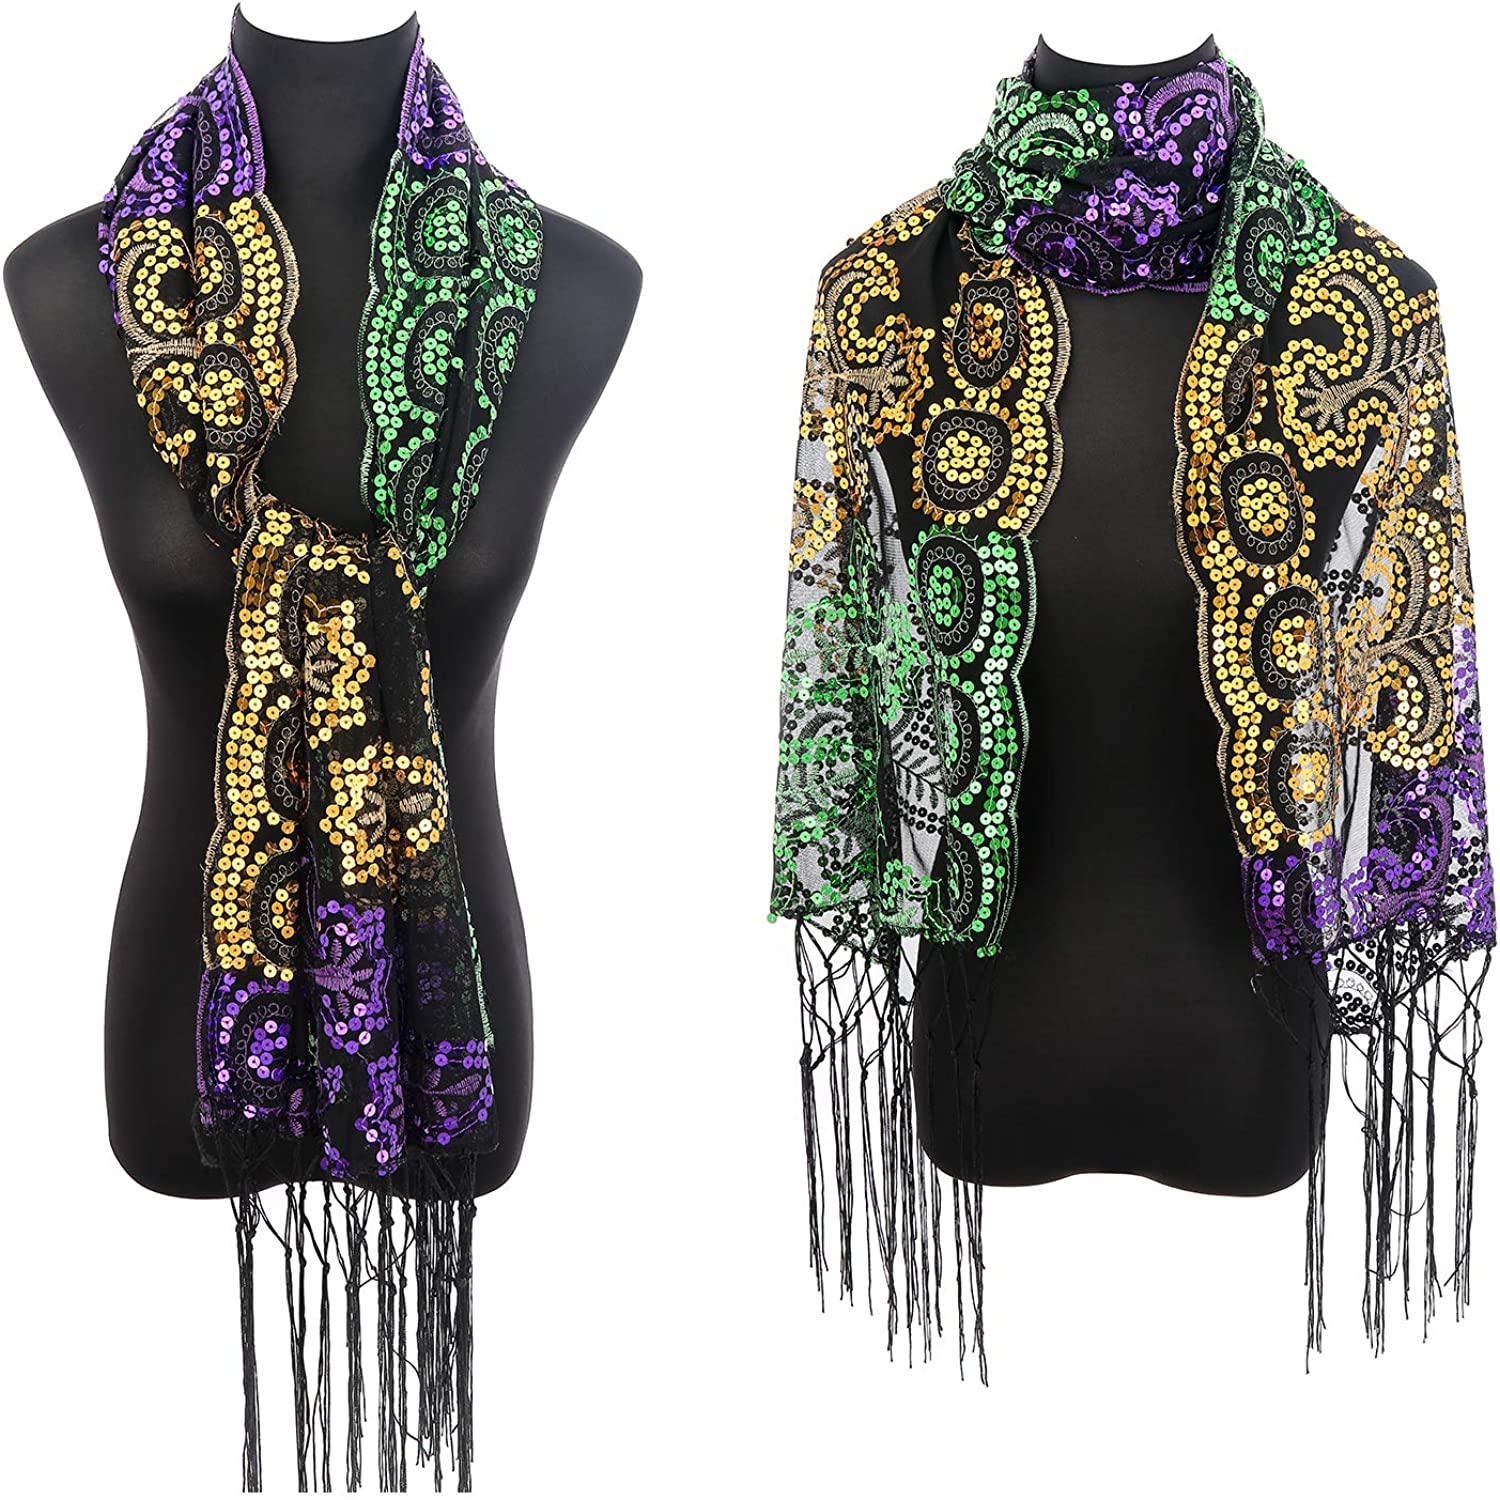 Mardi Gras Shawl Scarf Costume Accessories Set Decorations with Mardi Gras Headband and Earrings for Women